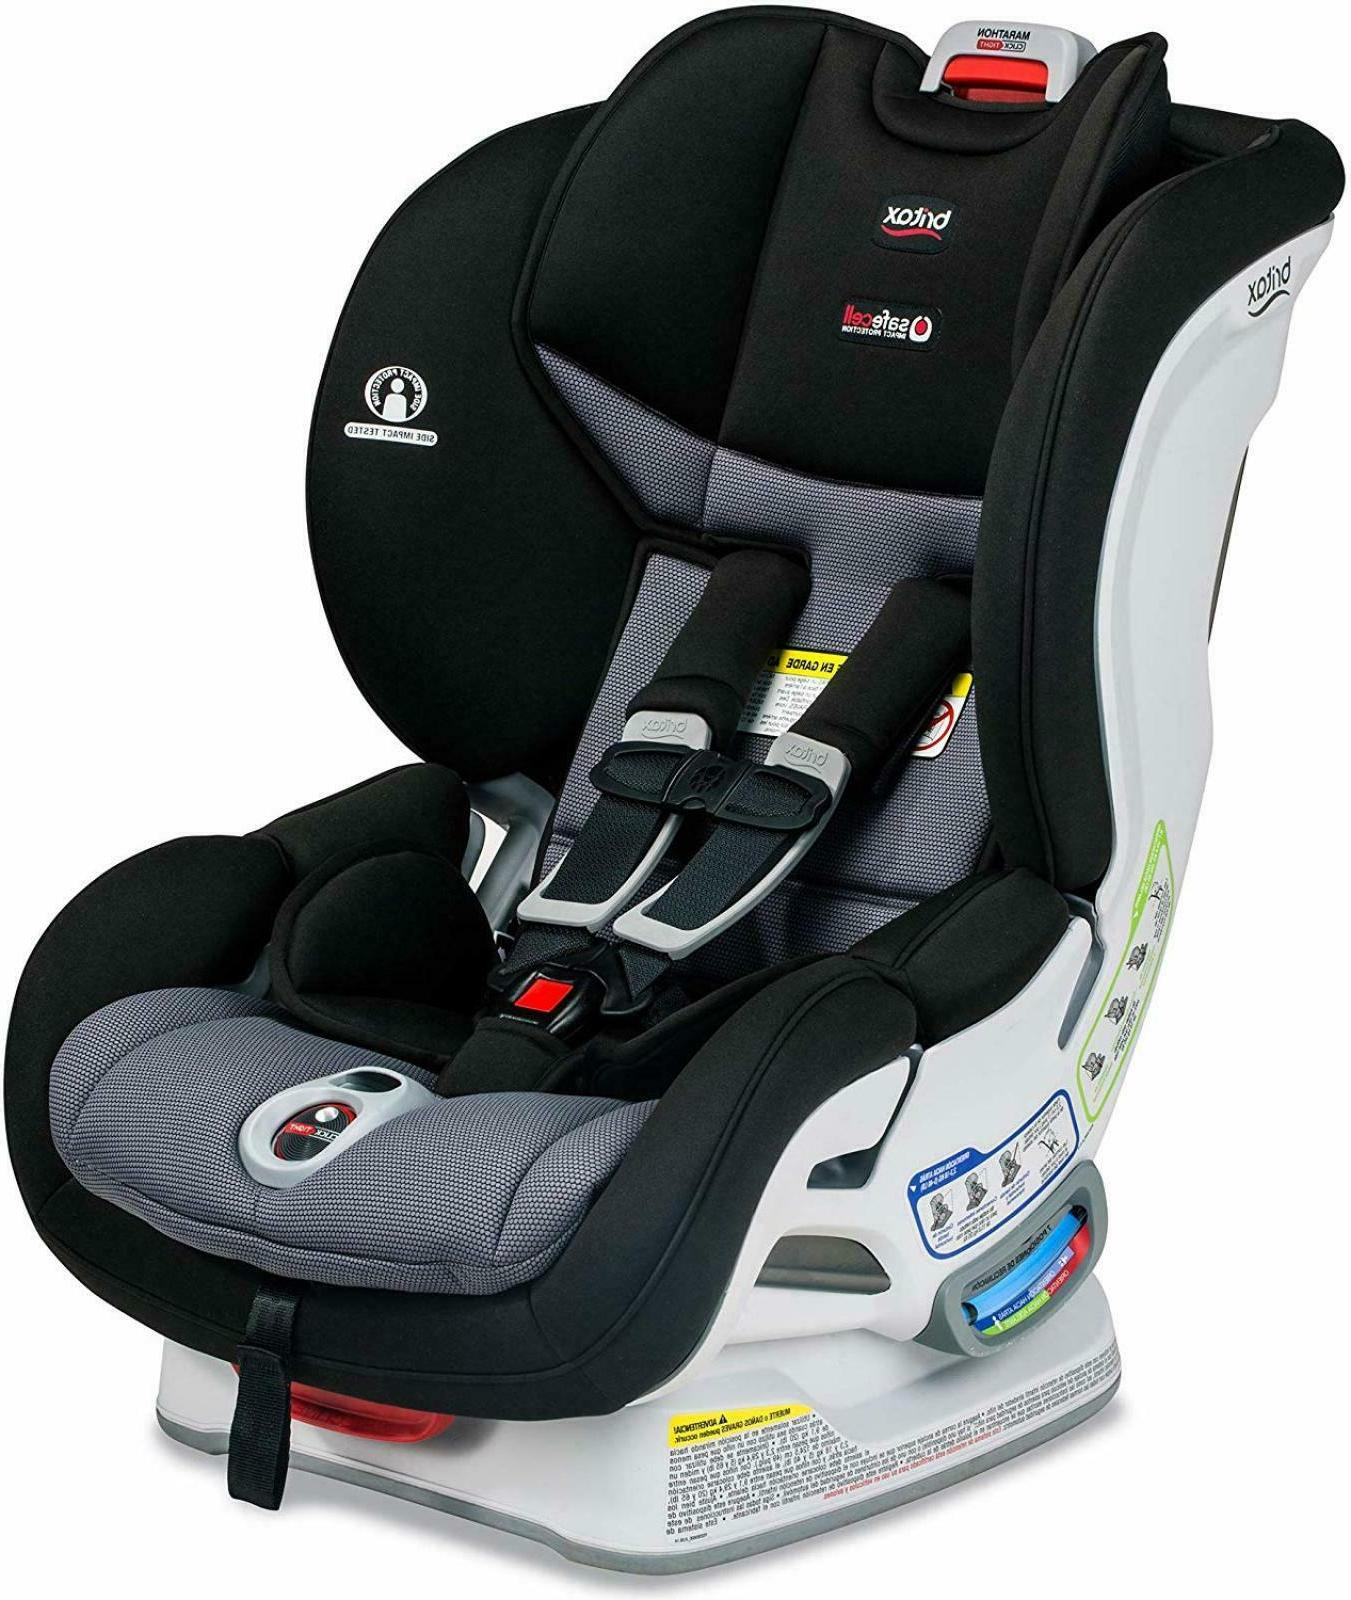 convertible car seat baby travel toddler booster